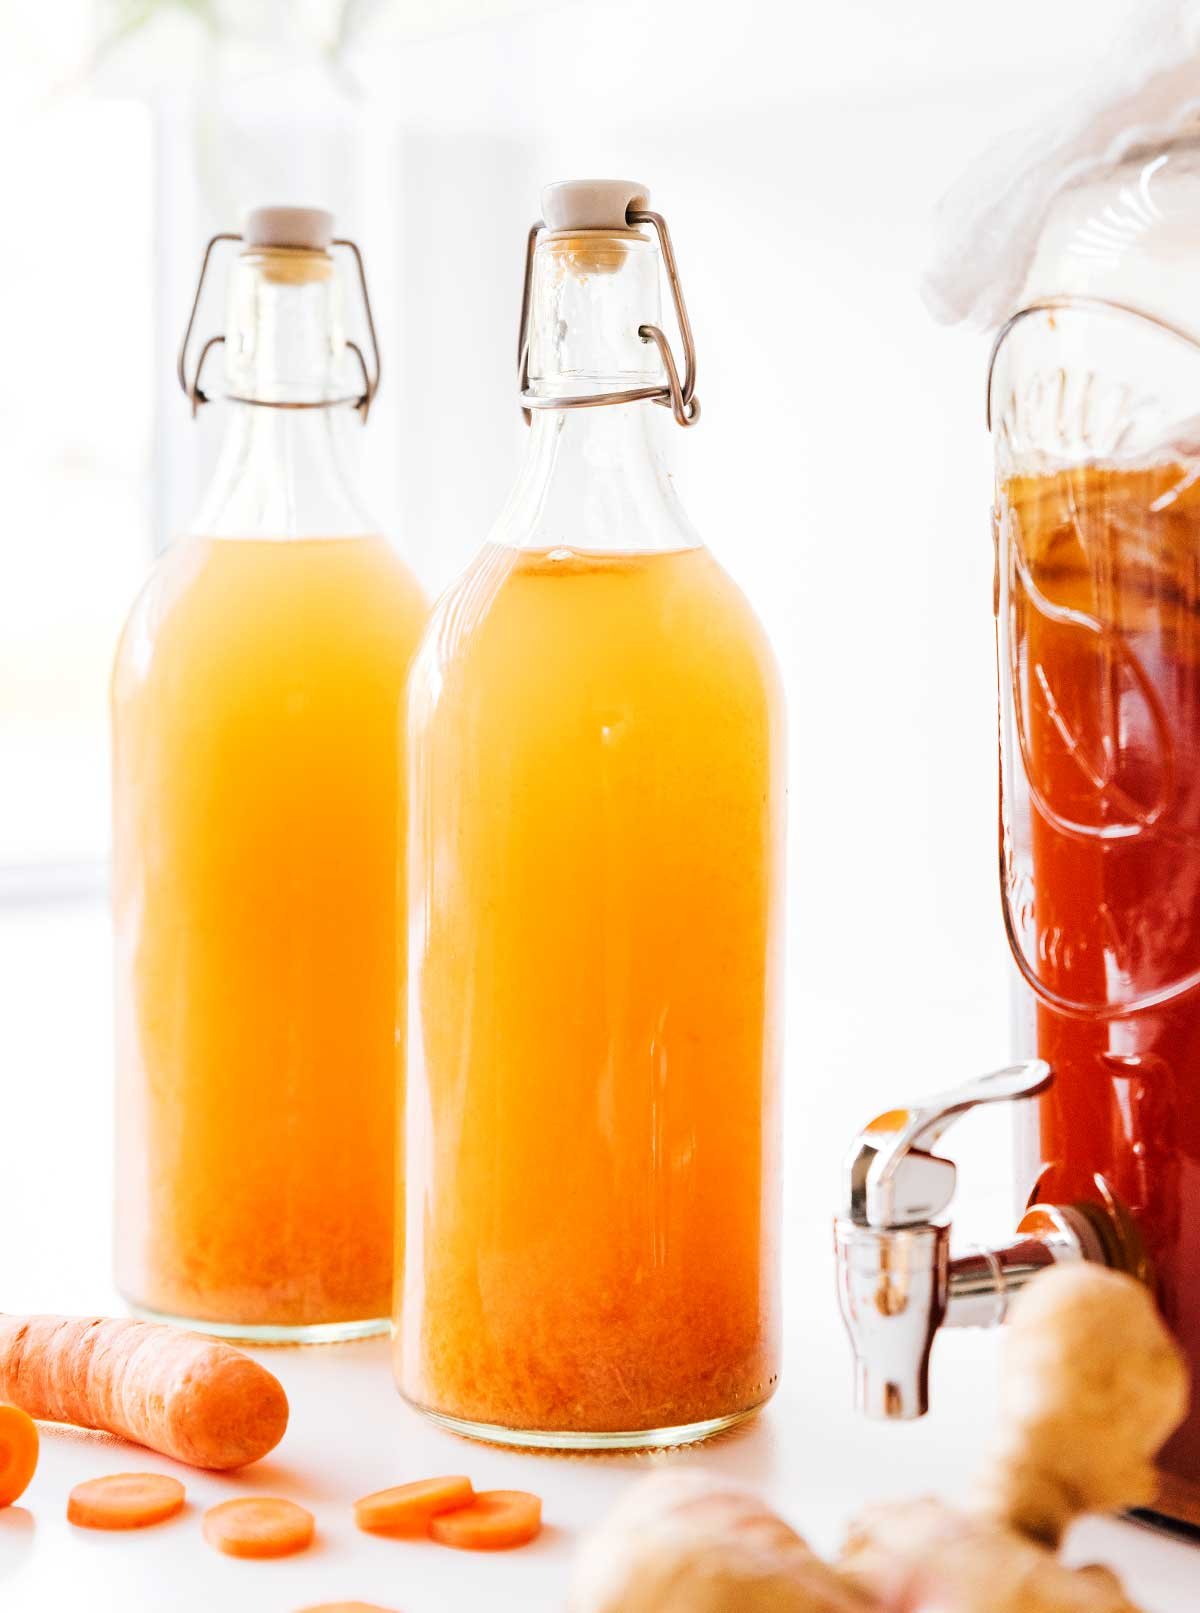 Carrot ginger kombucha in fermentation bottles on an orange background